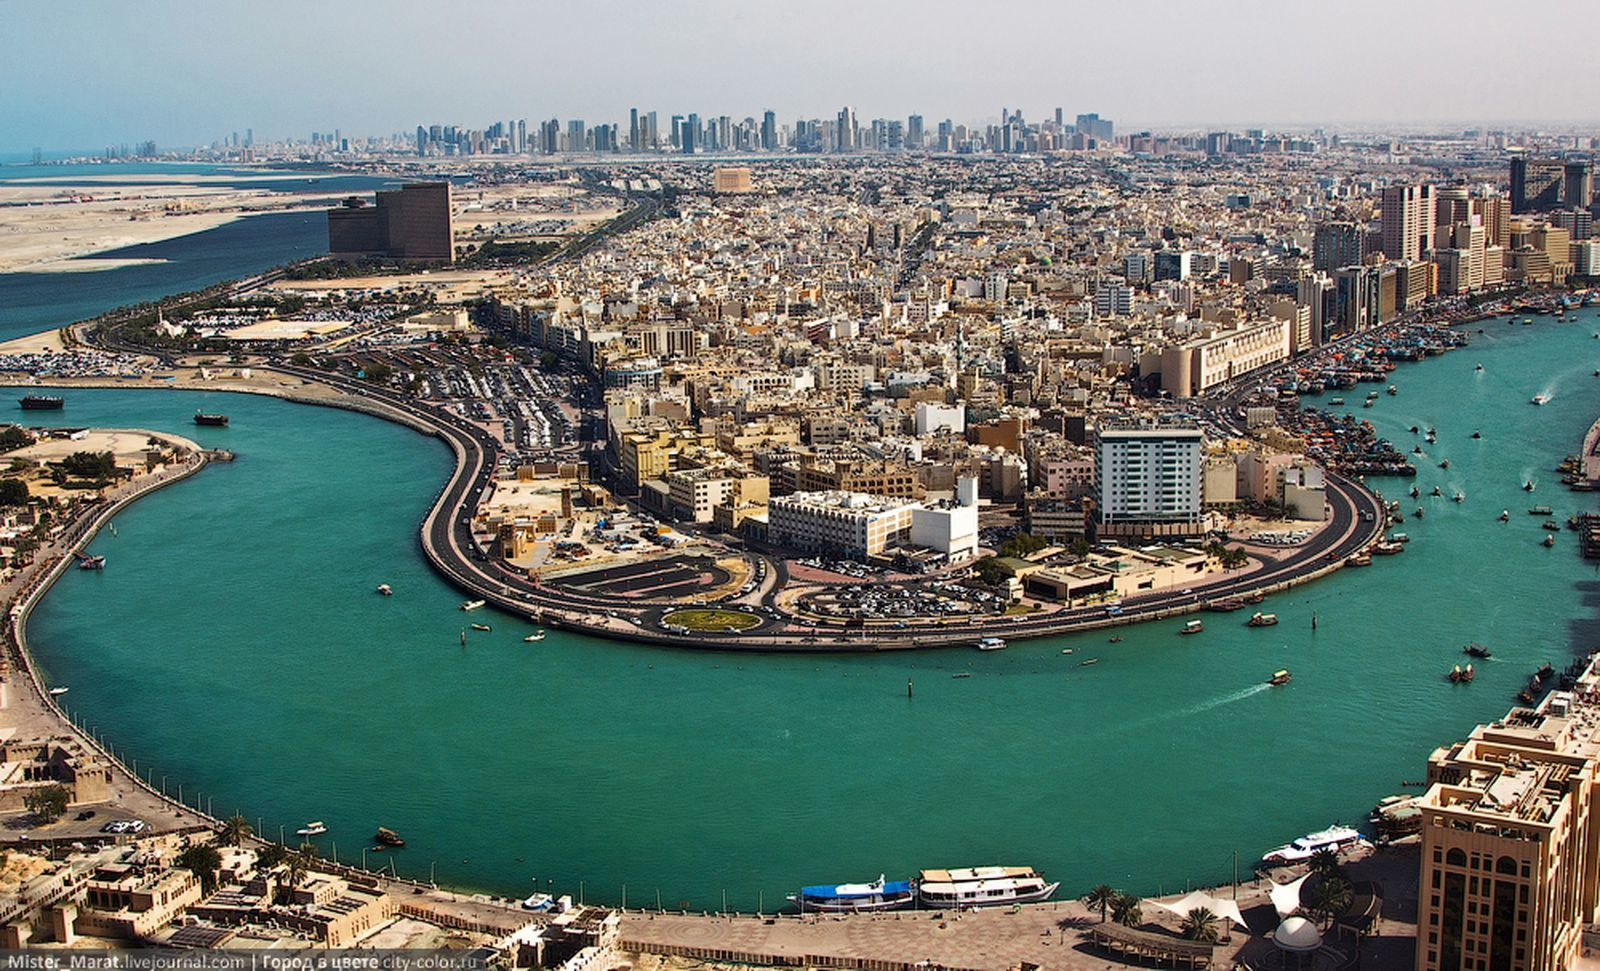 Who has been to Dubai and can tell me about it?